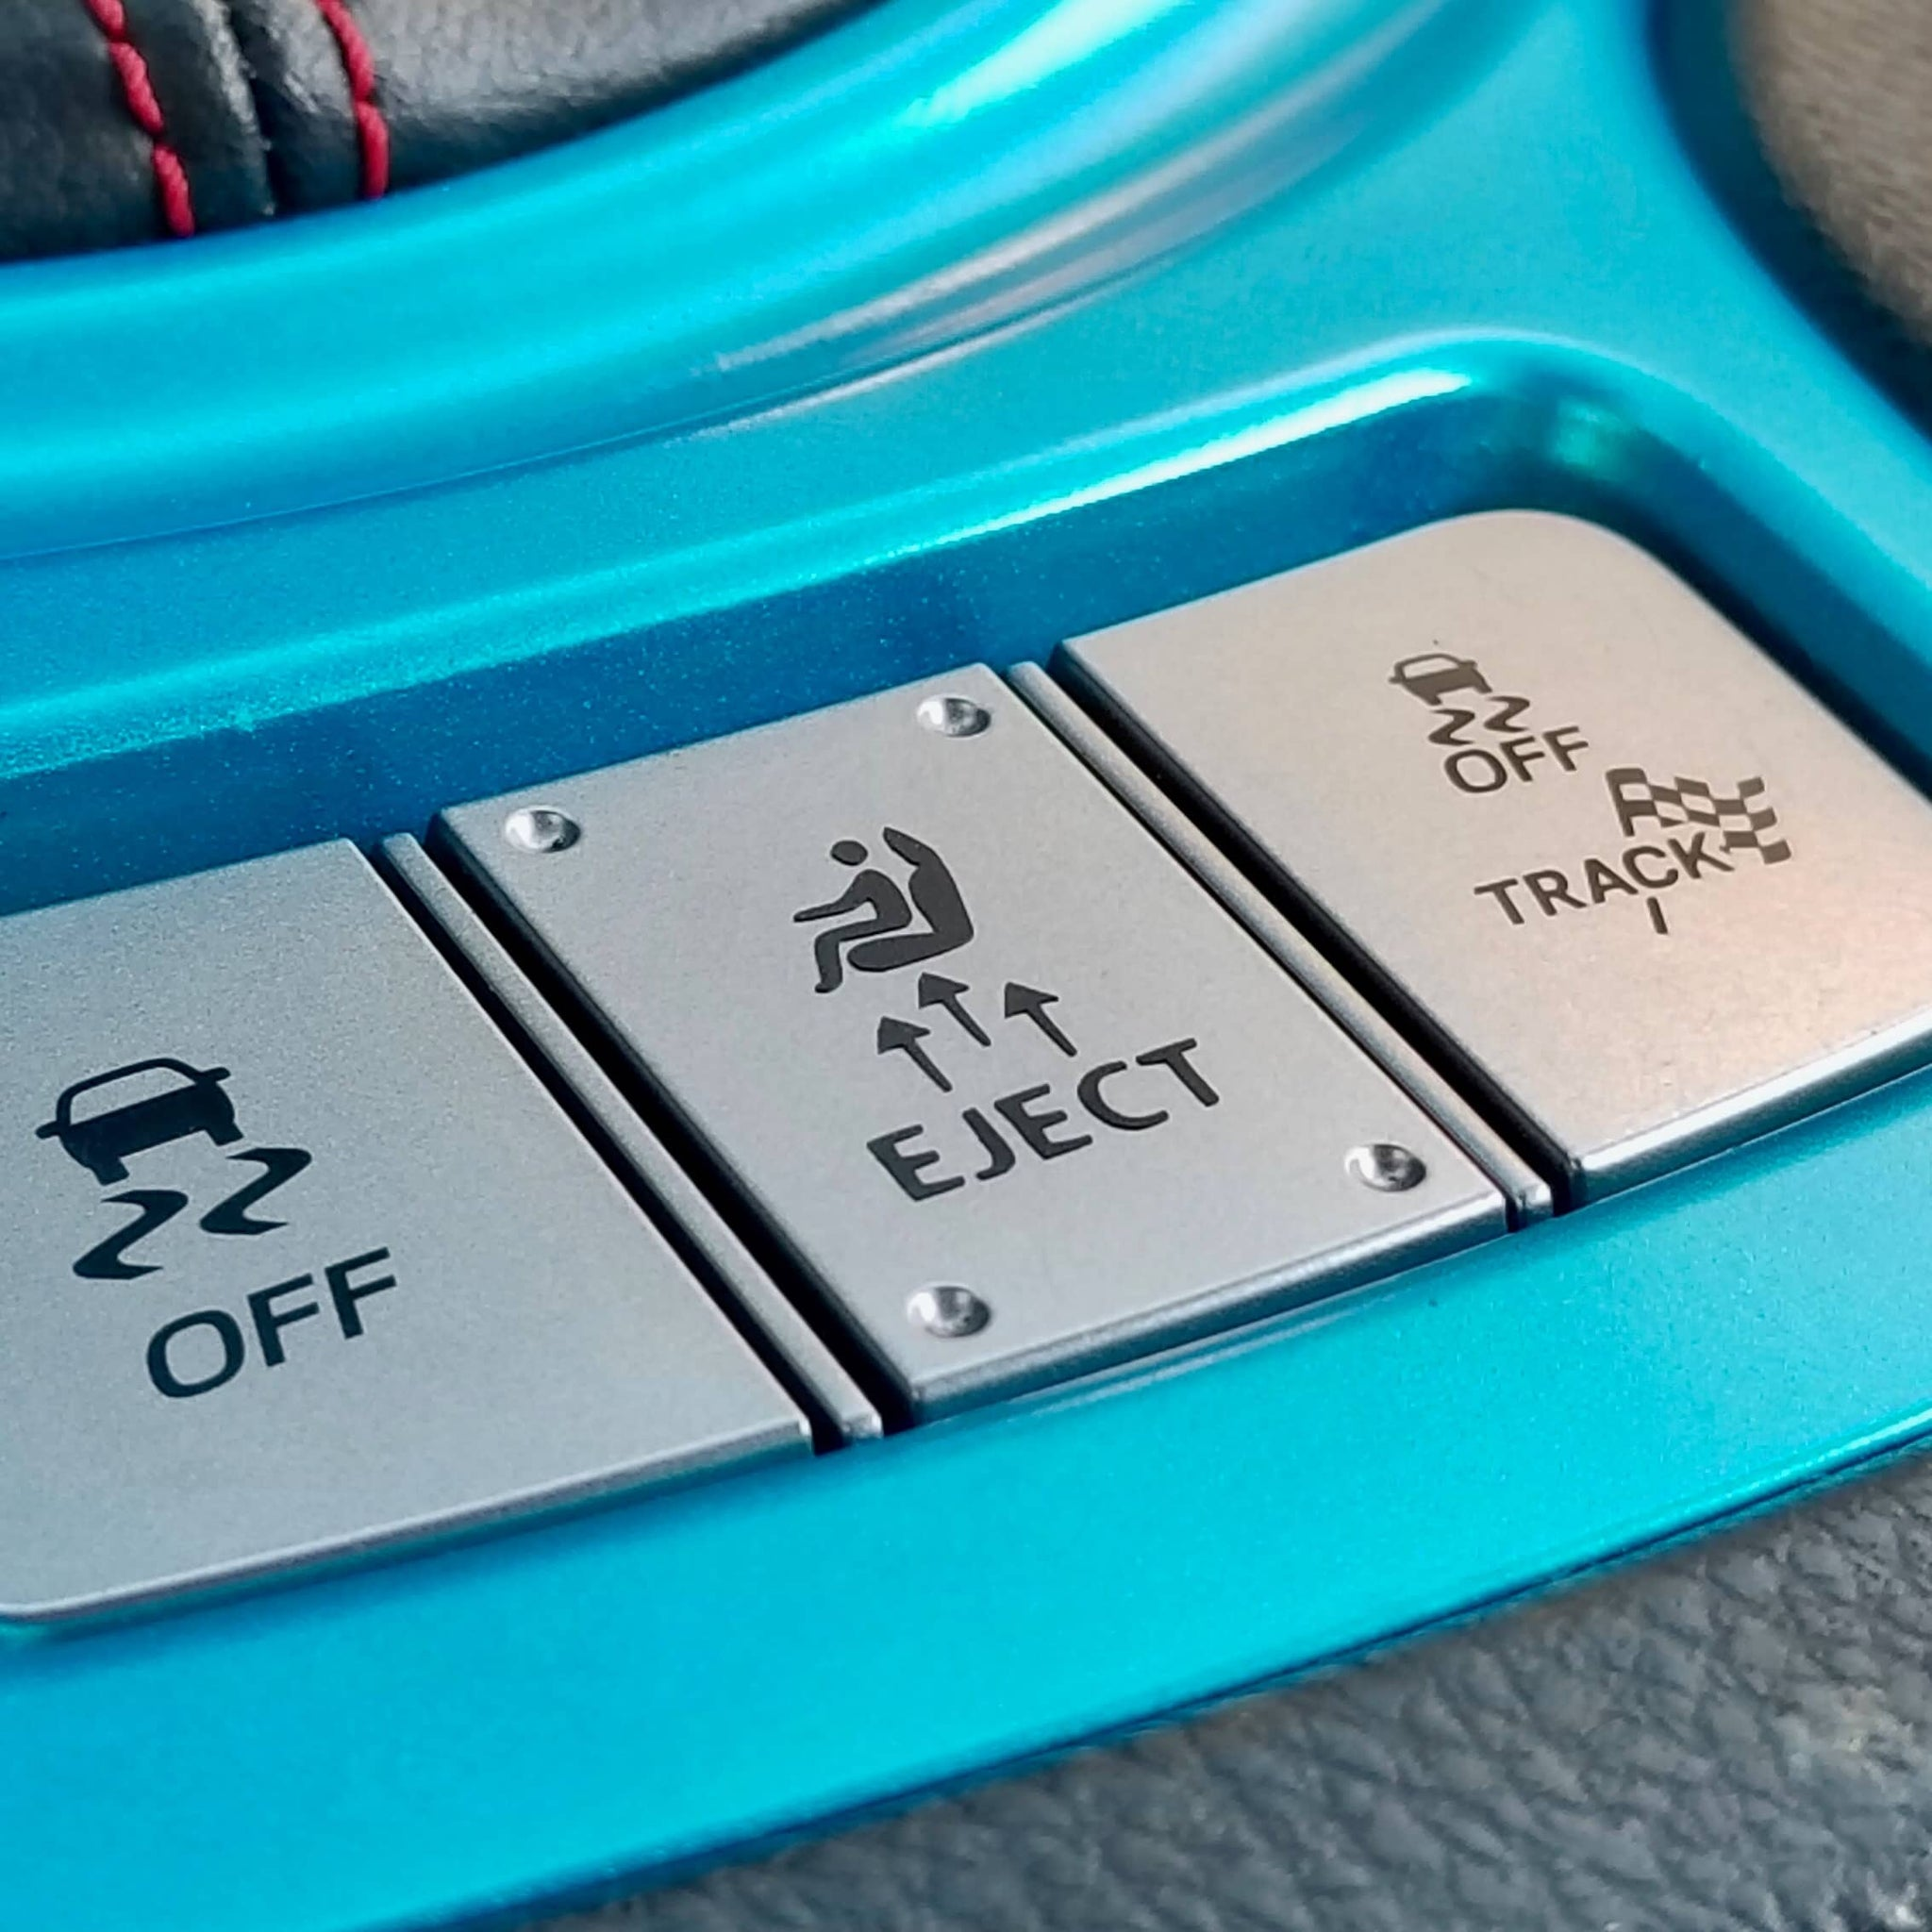 Eject Seat Button